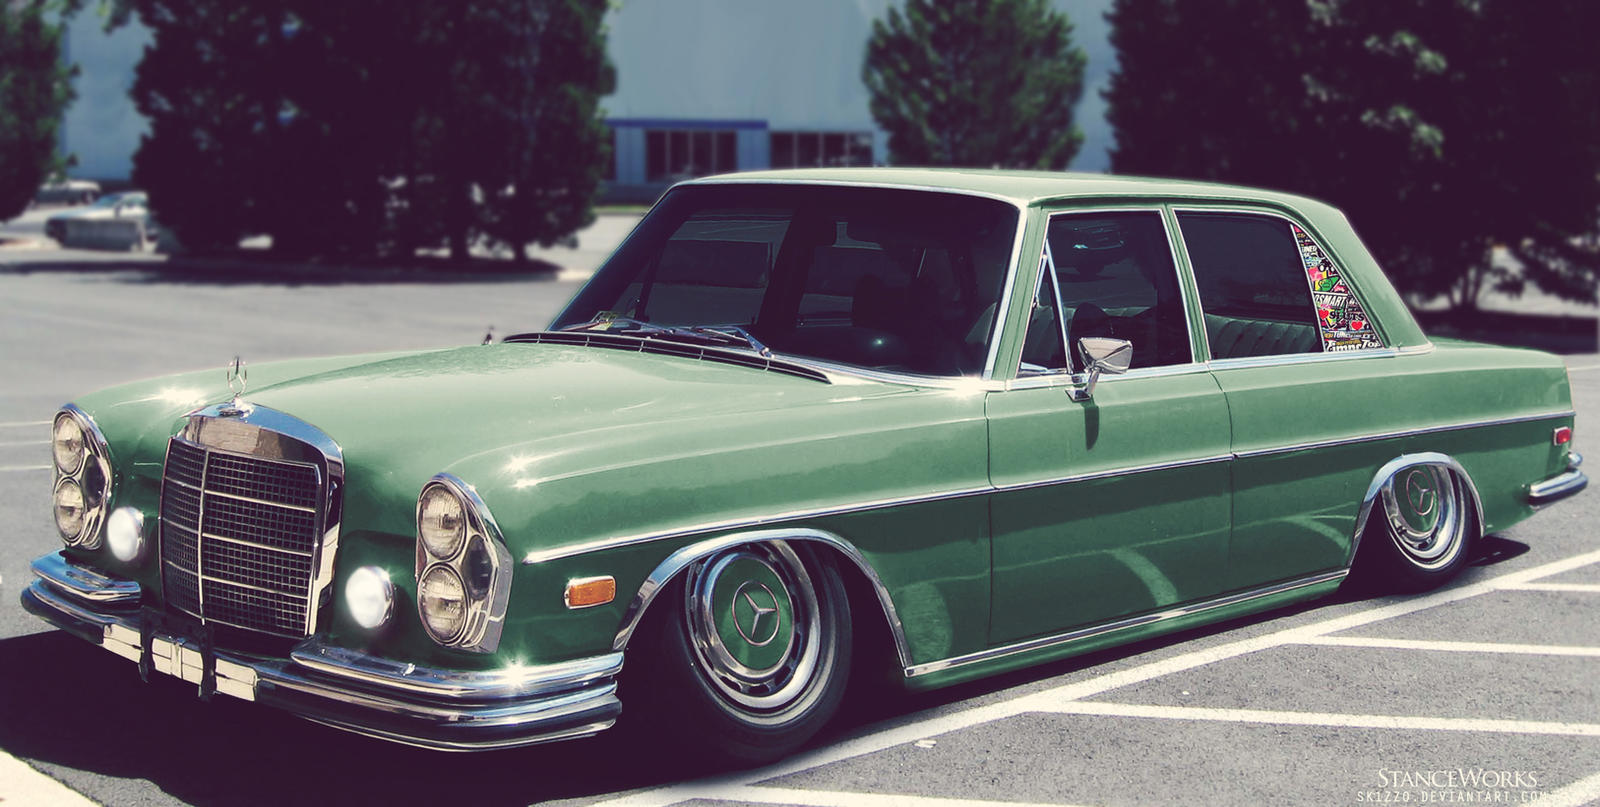 Stanced mercedes benz w108 by sk1zzo on deviantart for Mercedes benz 108